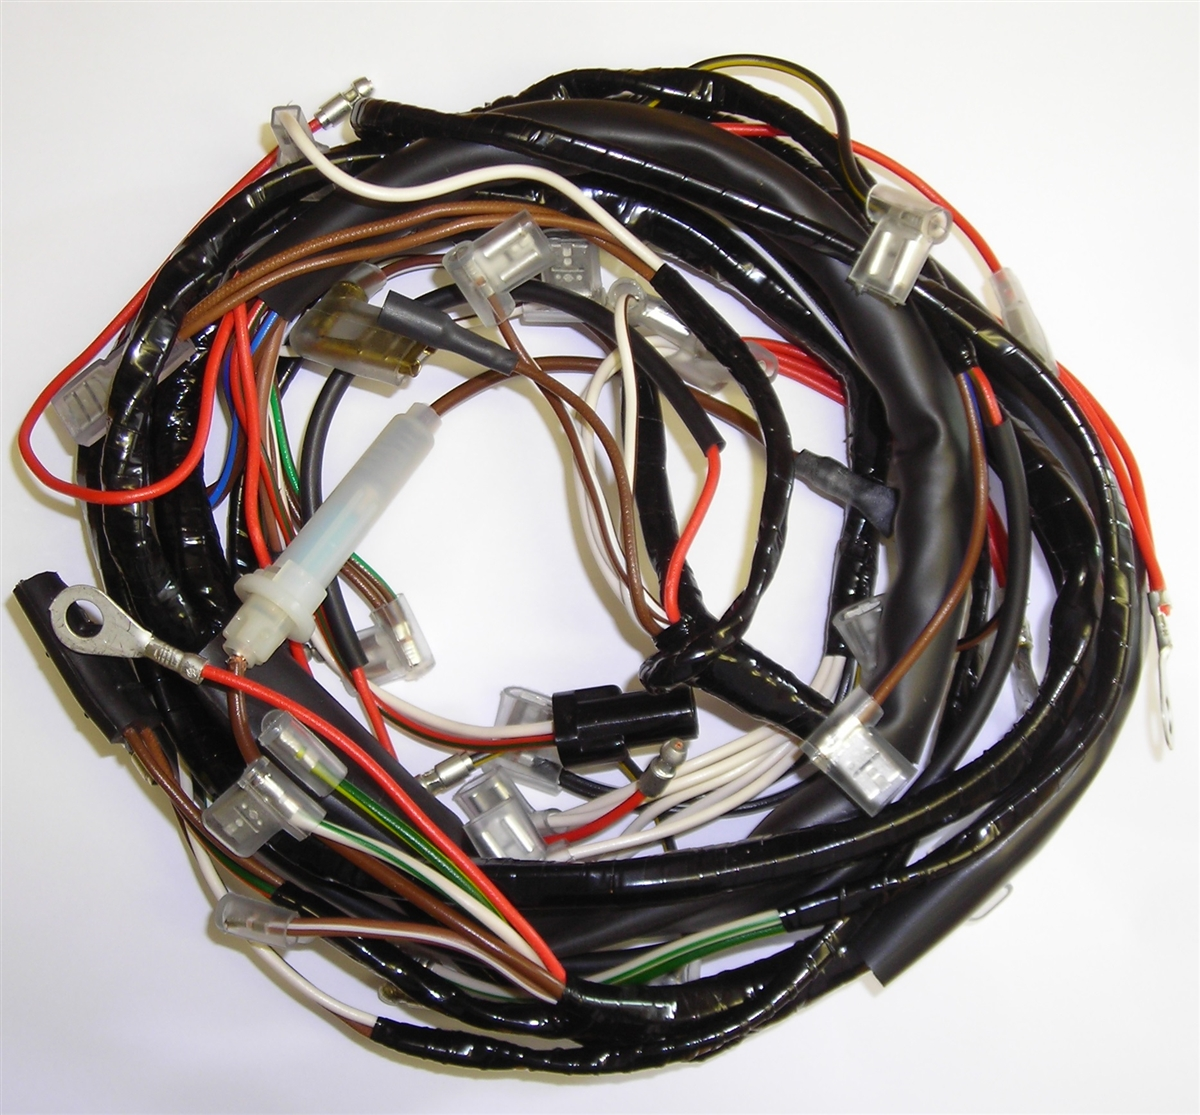 triumph t100 t120 tr6 motorcycle wiring harness 1969 triumph tr6 wiring harness [ 1200 x 1115 Pixel ]